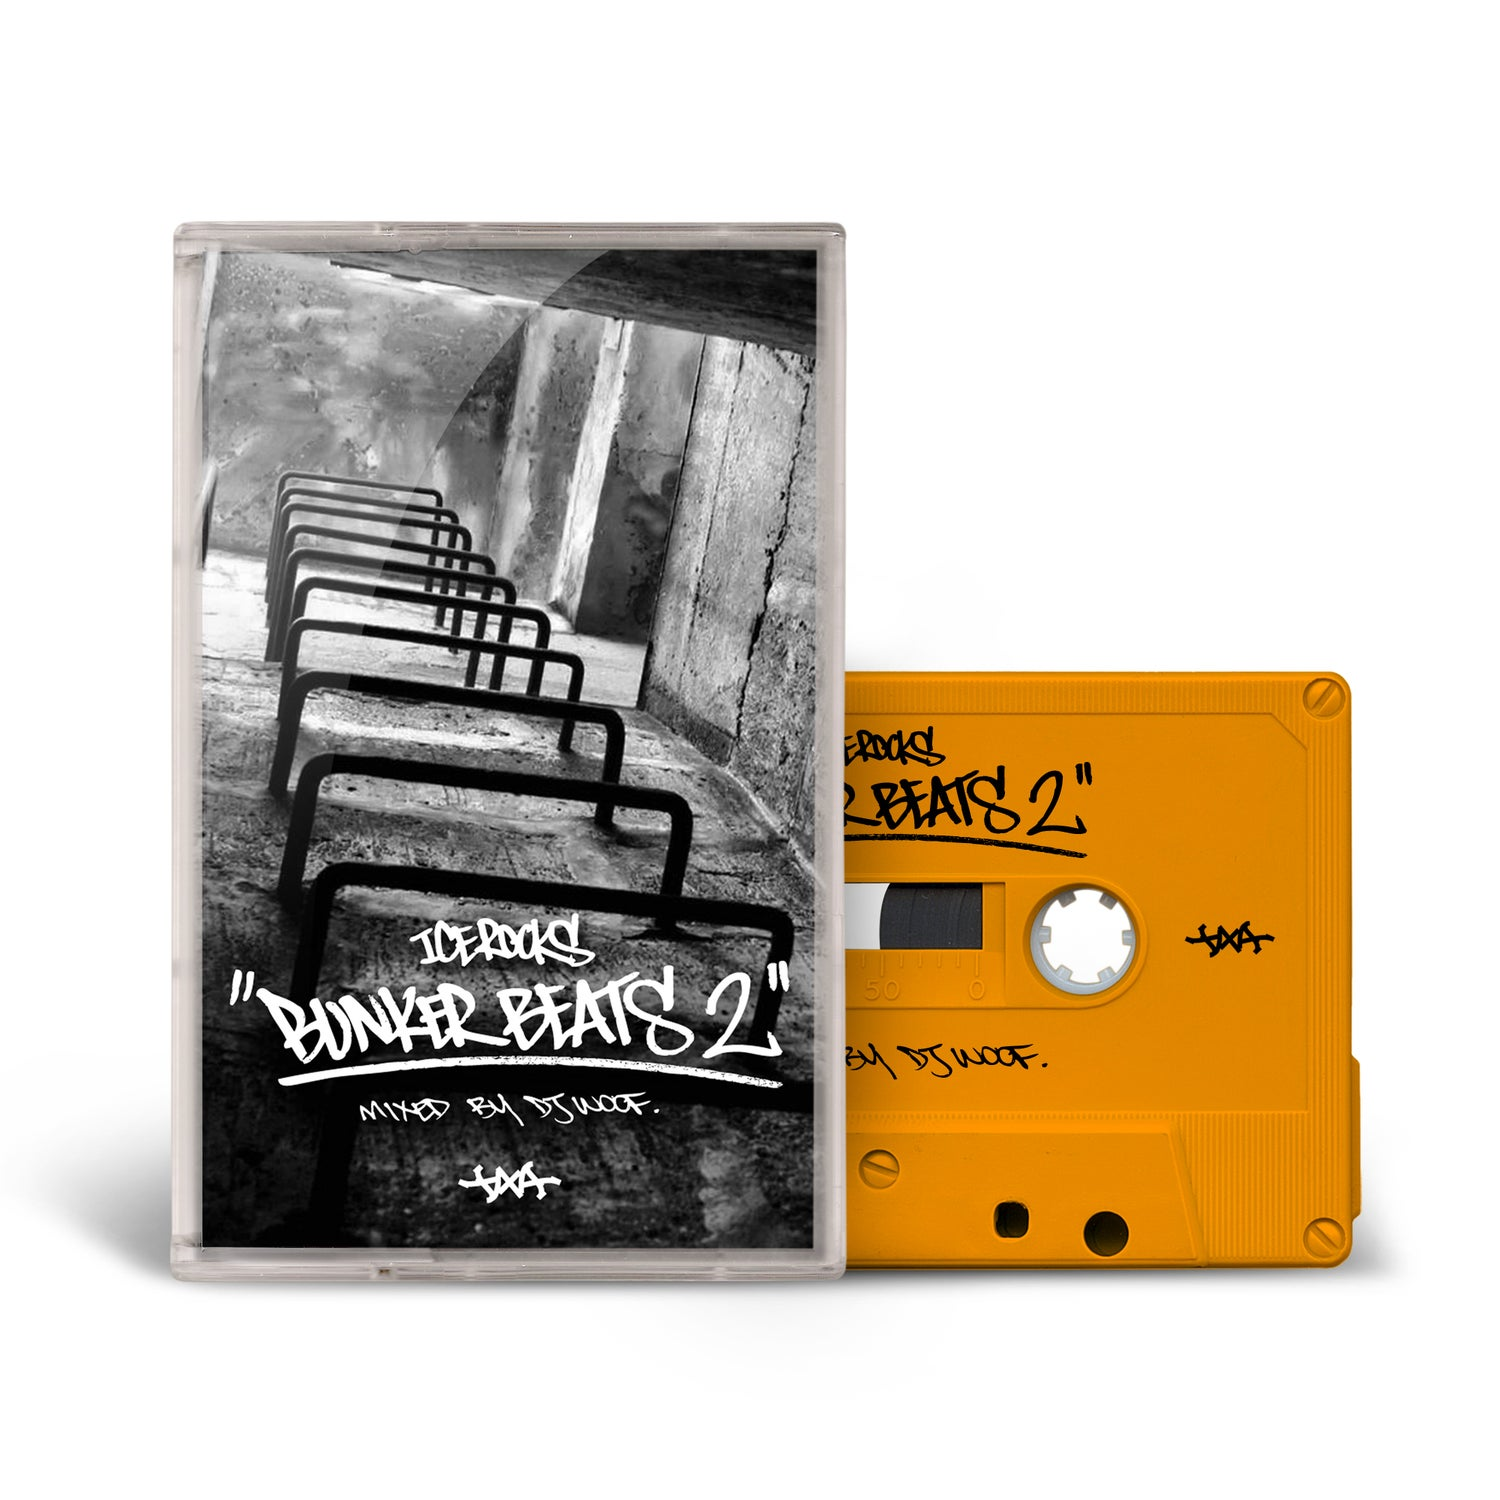 Image of IceRocks - Bunker Beats 2 || Cassette Pre Order (Ships End Of August)